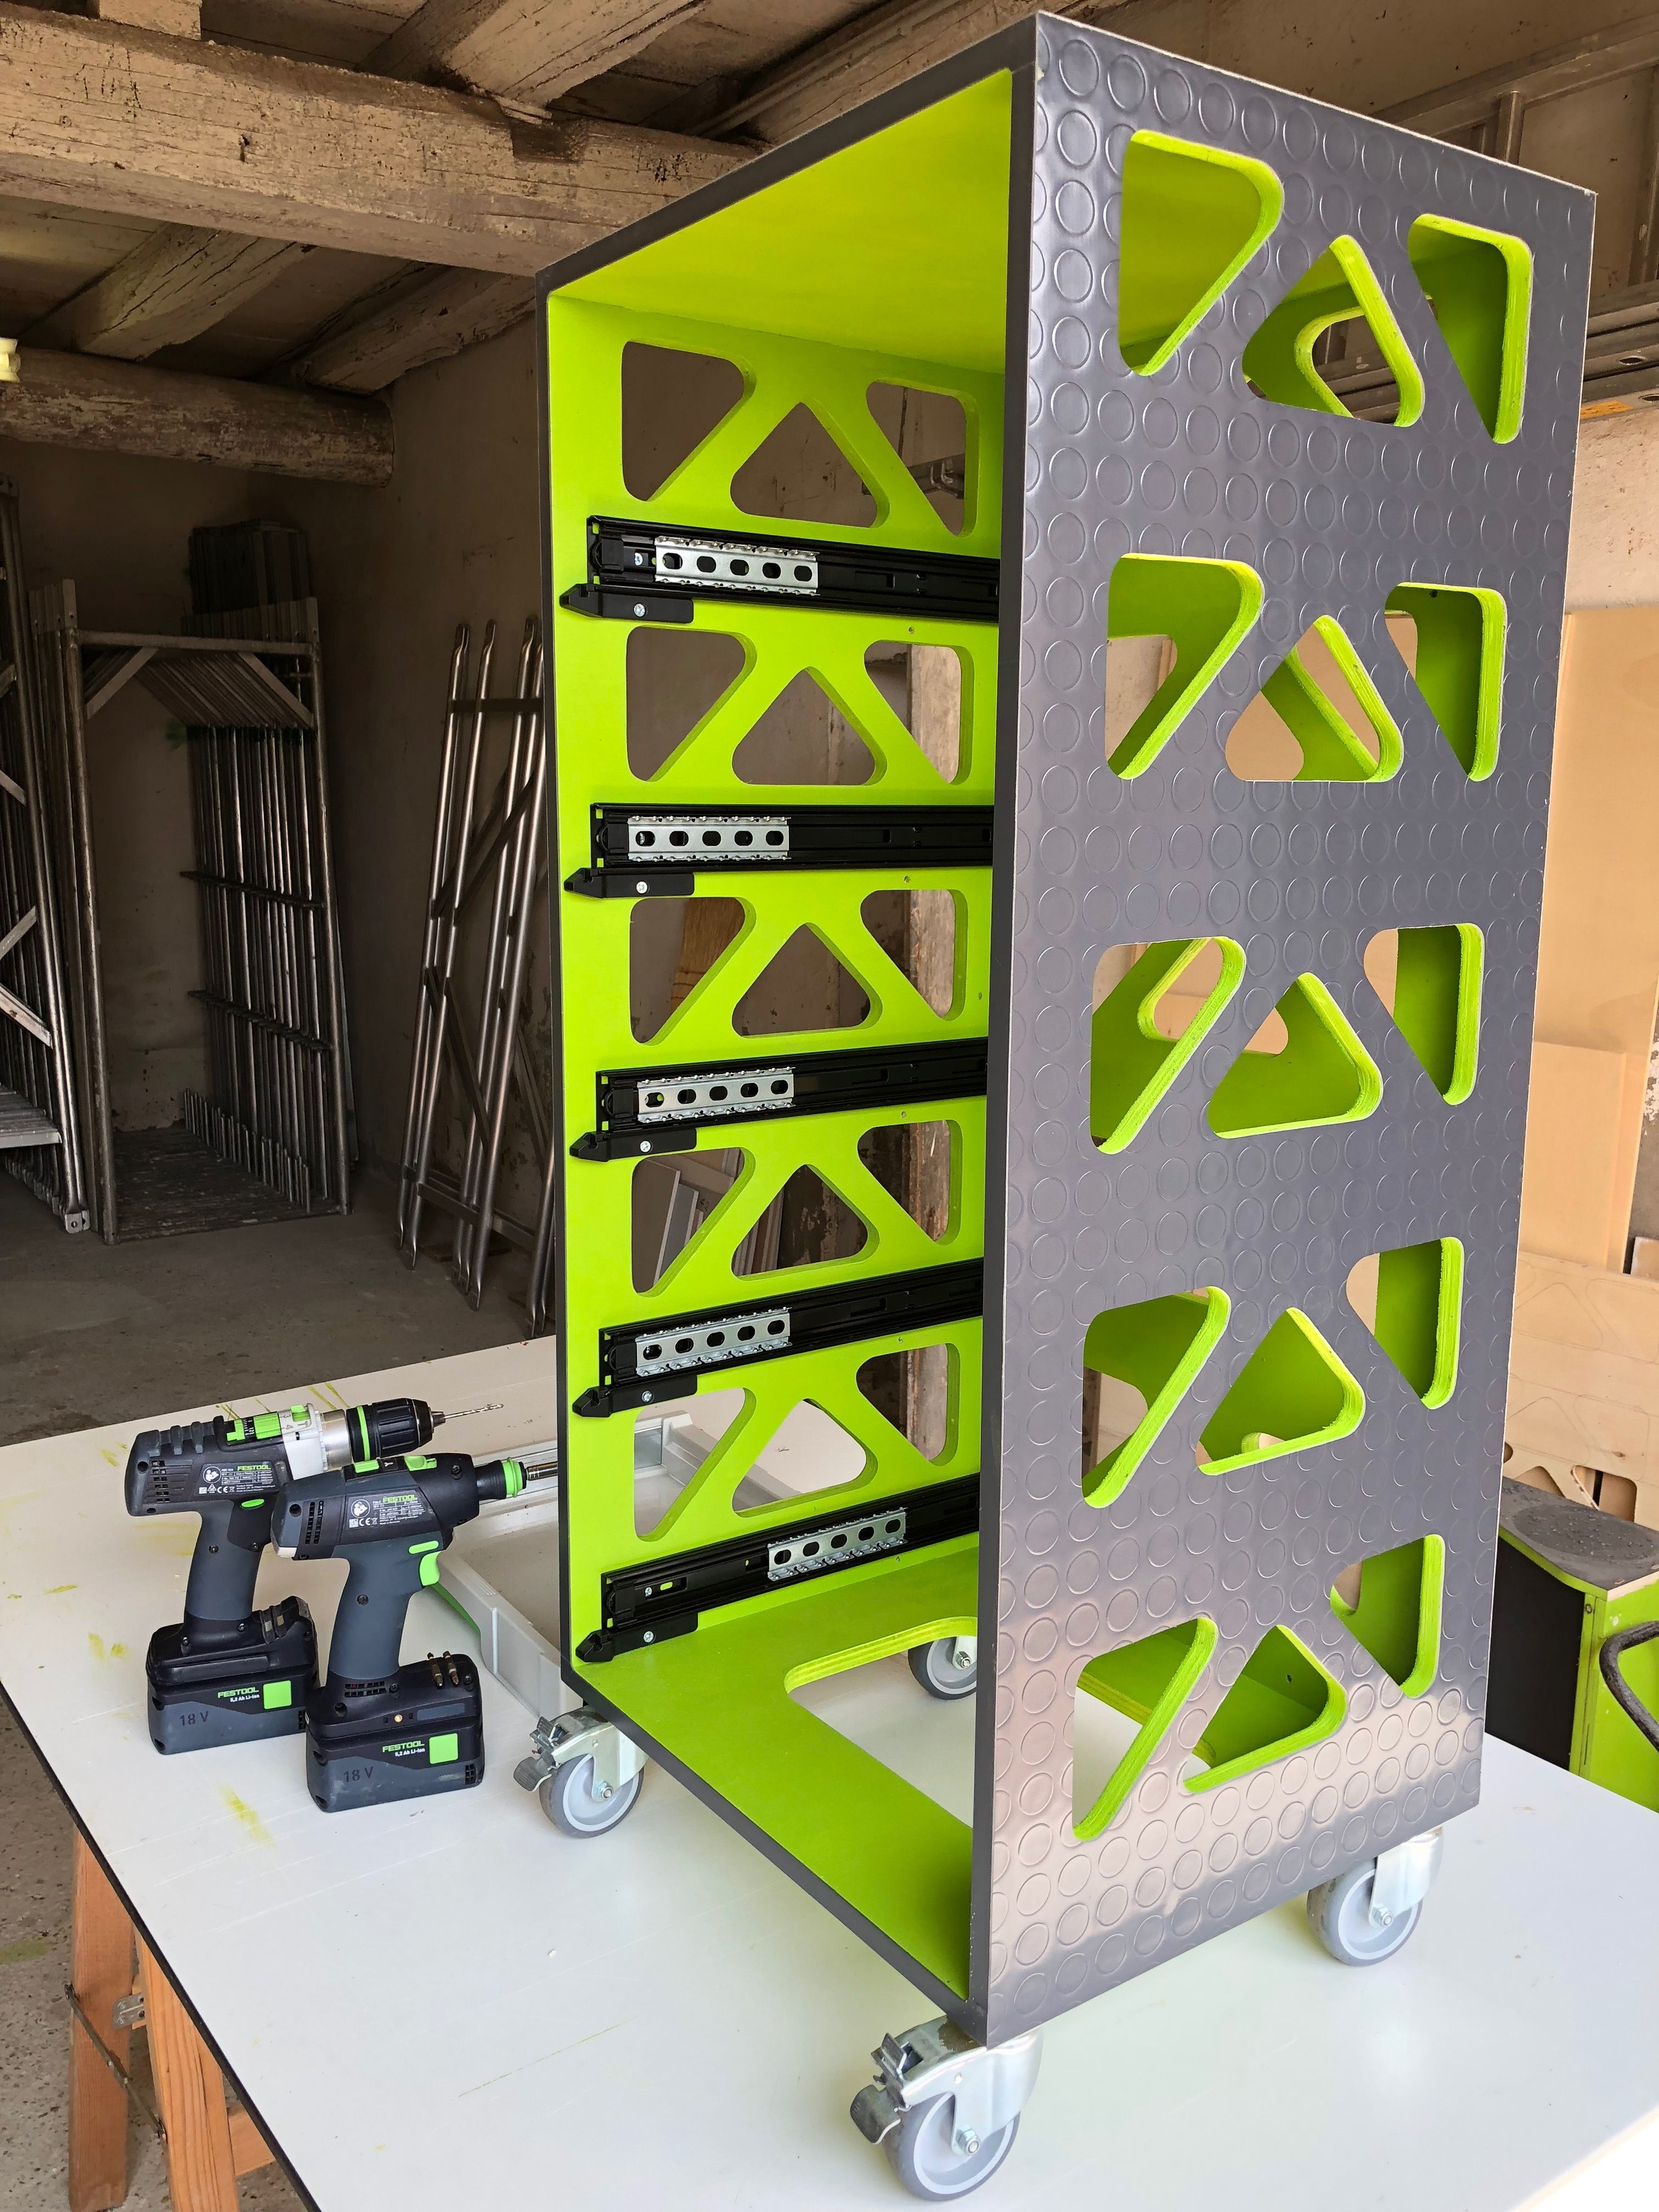 Pin By Jore 83 On Festool Systainer Diy Garage Storage Workshop Storage Festool Systainer